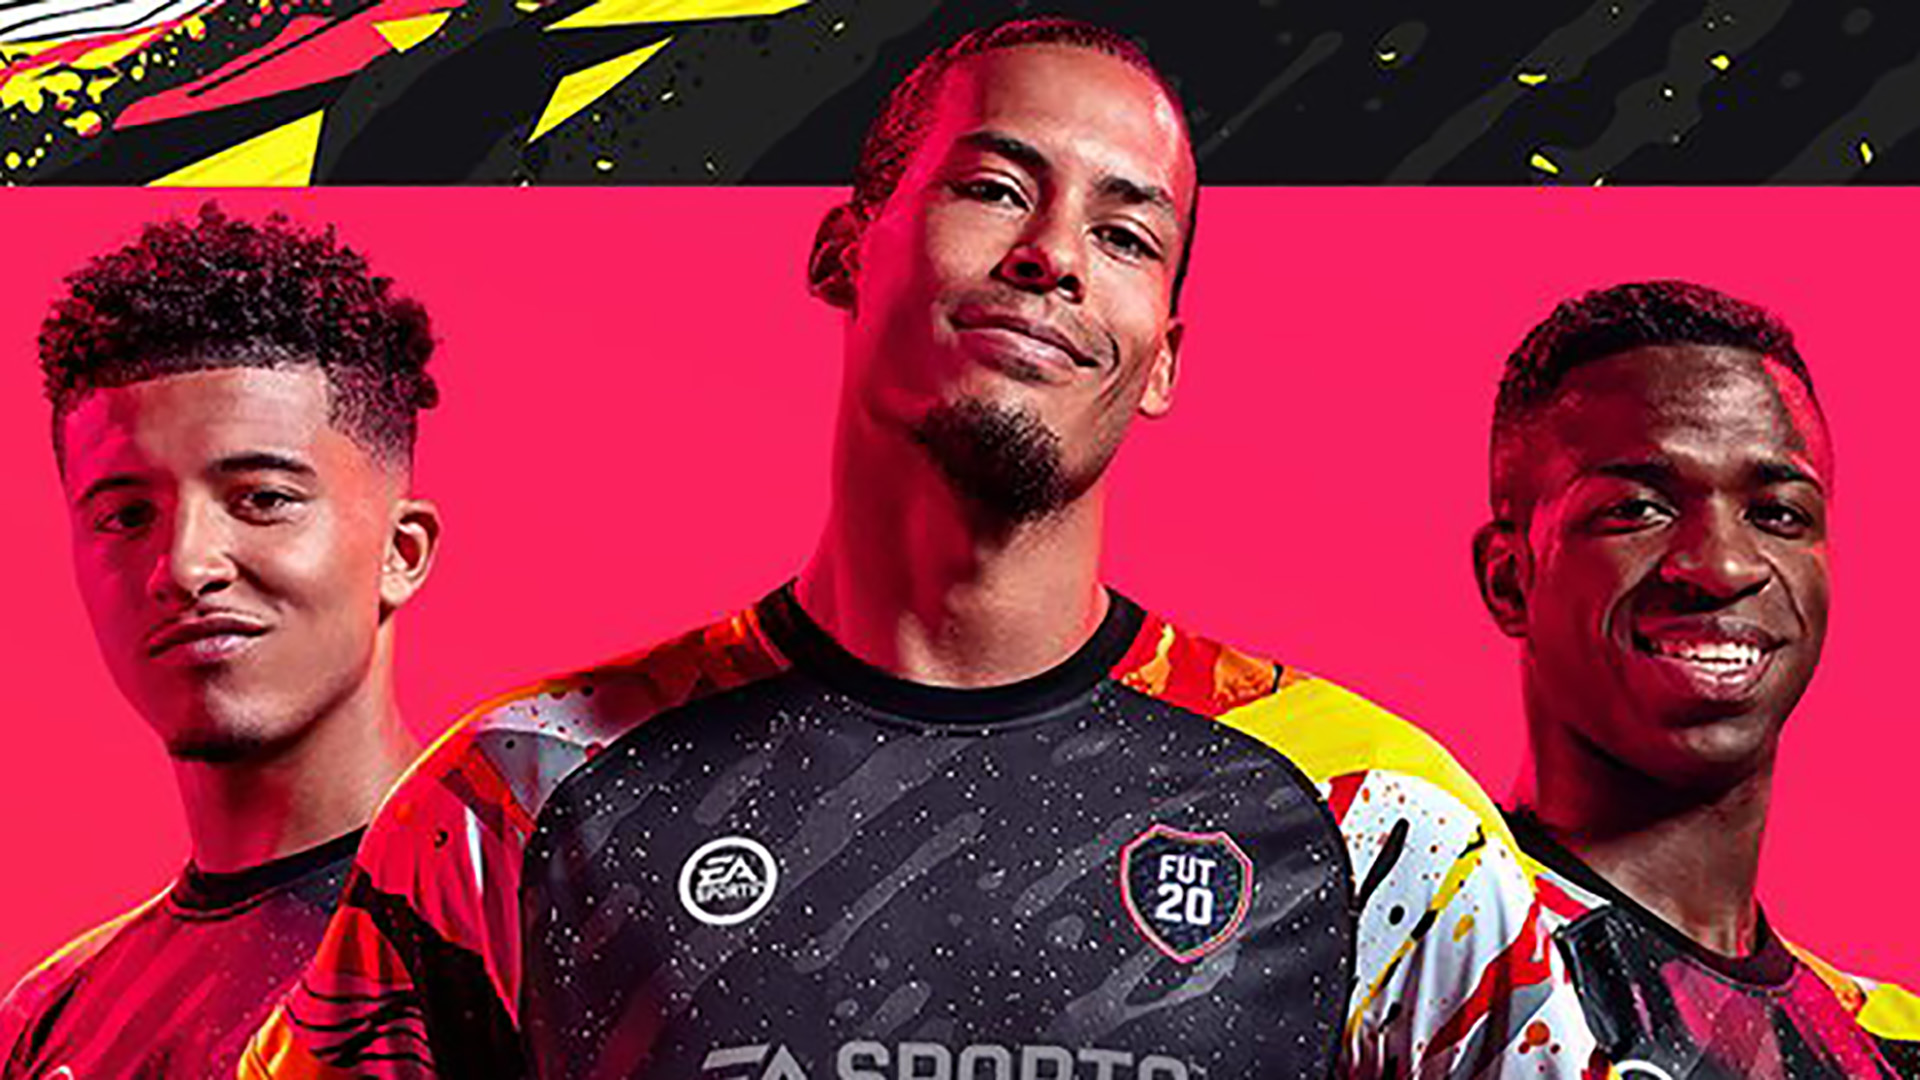 FIFA 20 Ultimate Team 1920x1080